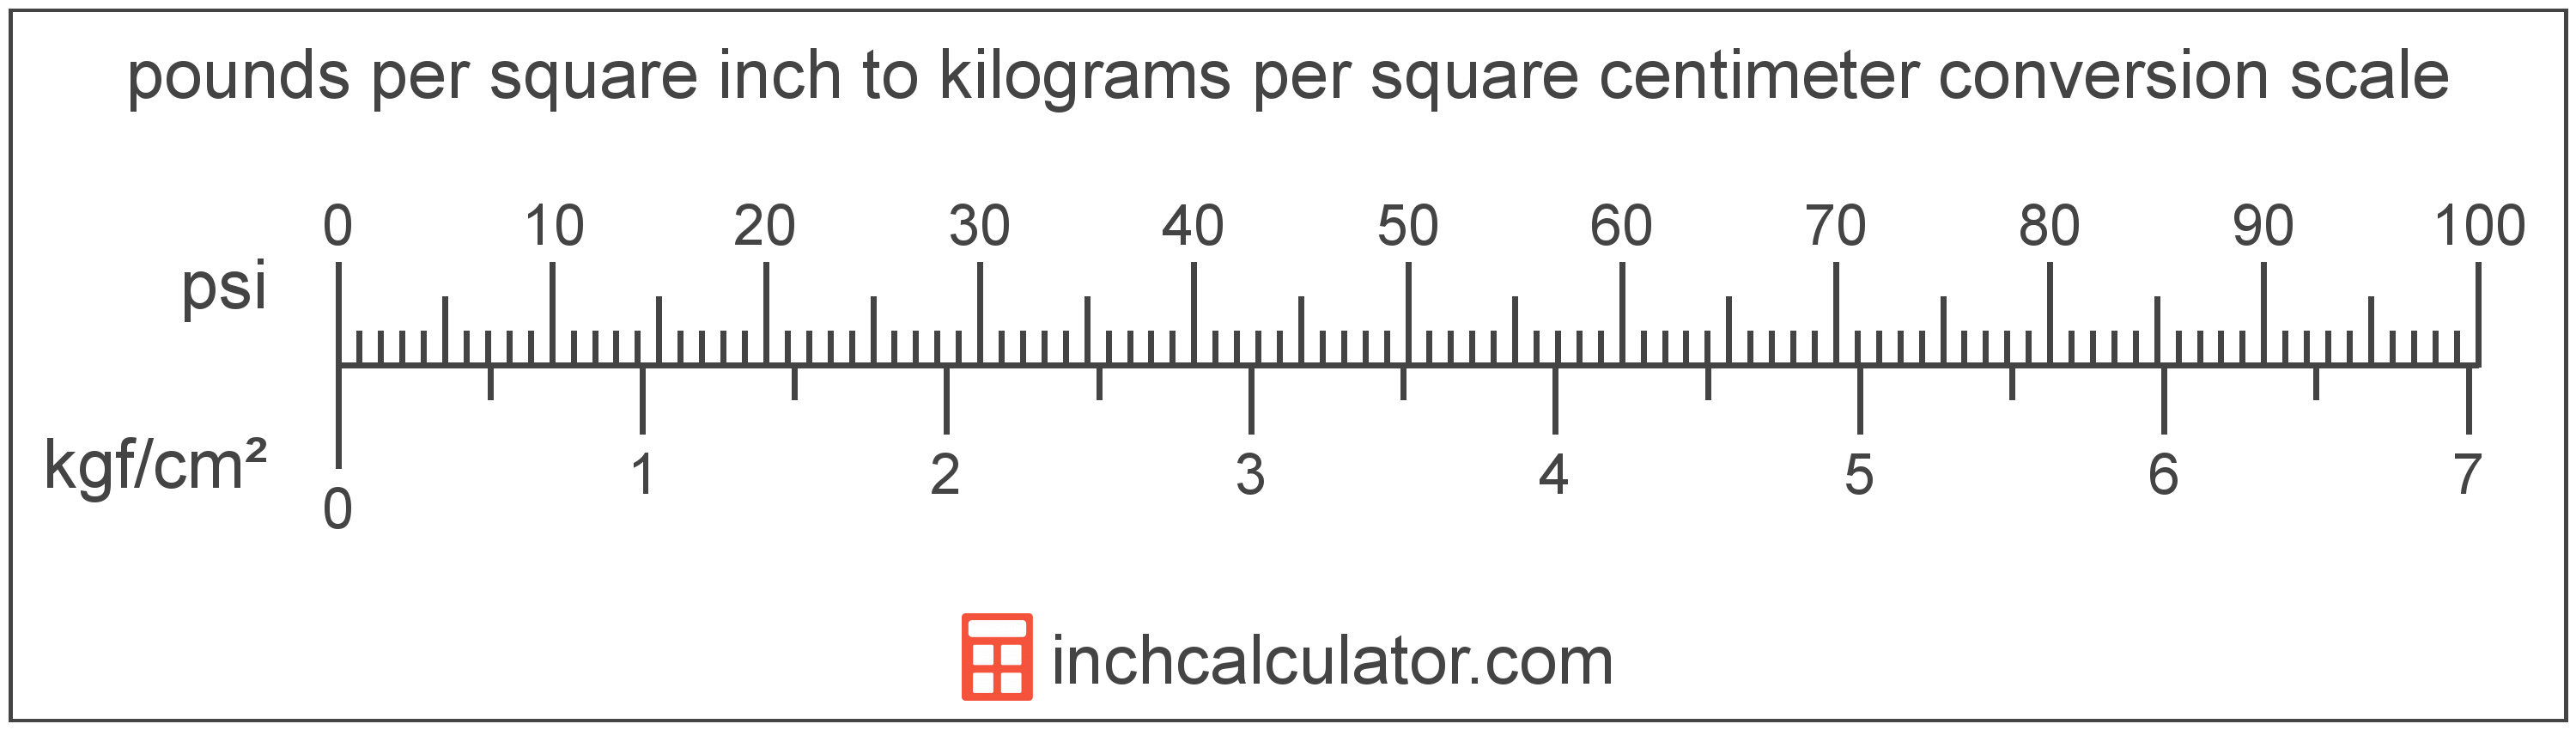 conversion scale showing kilograms per square centimeter and equivalent pounds per square inch pressure values